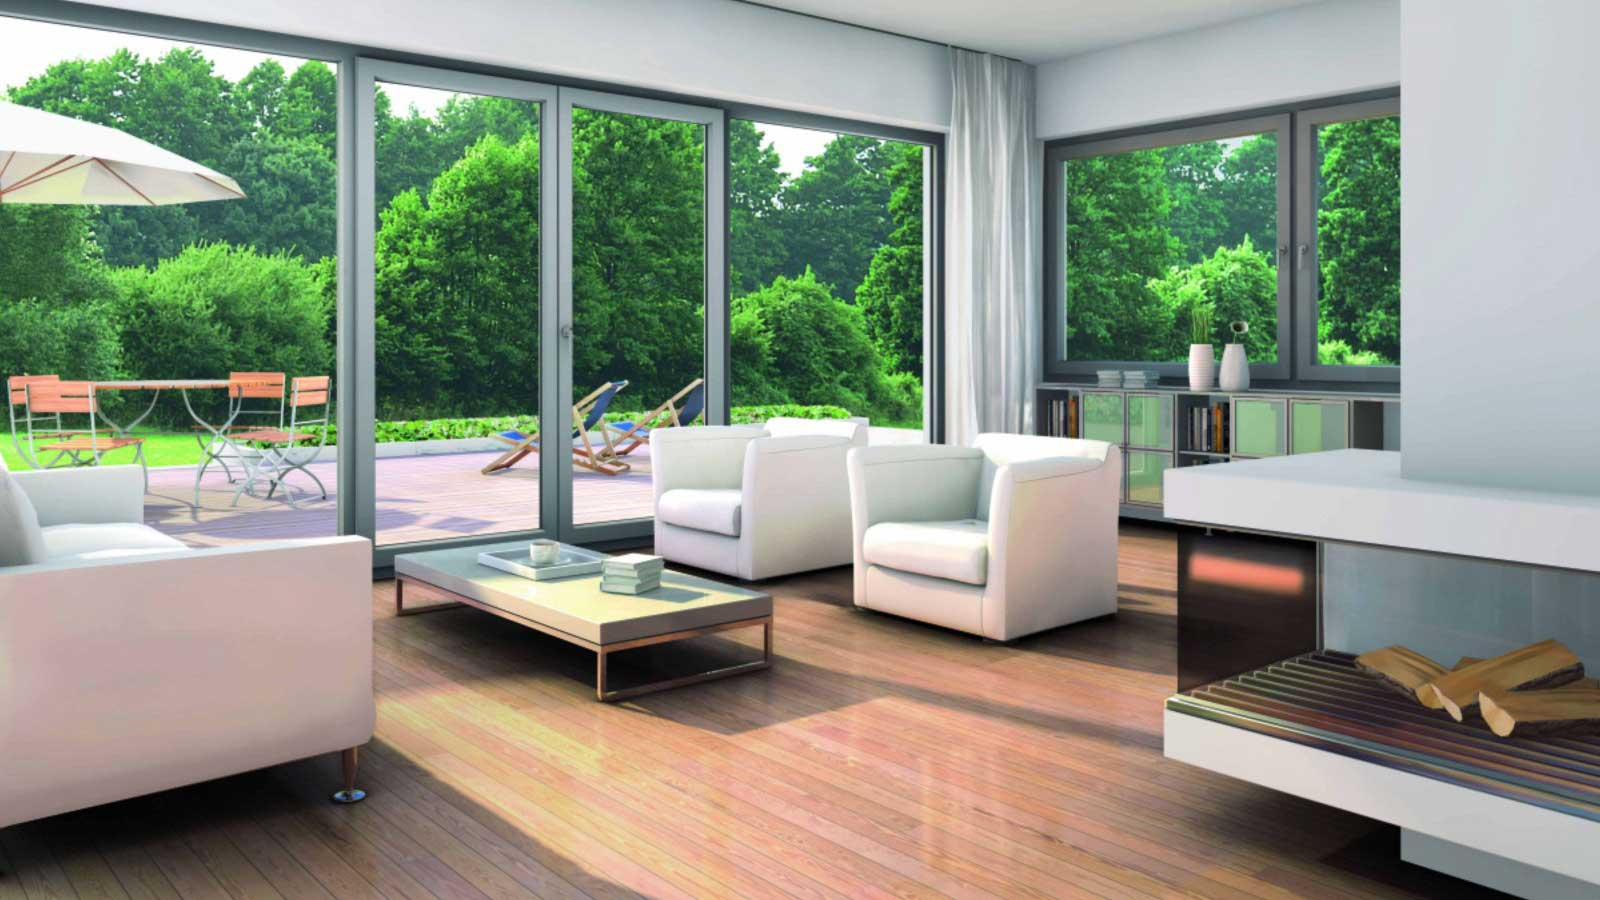 15 living room window designs decorating ideas design Modern big living room ideas